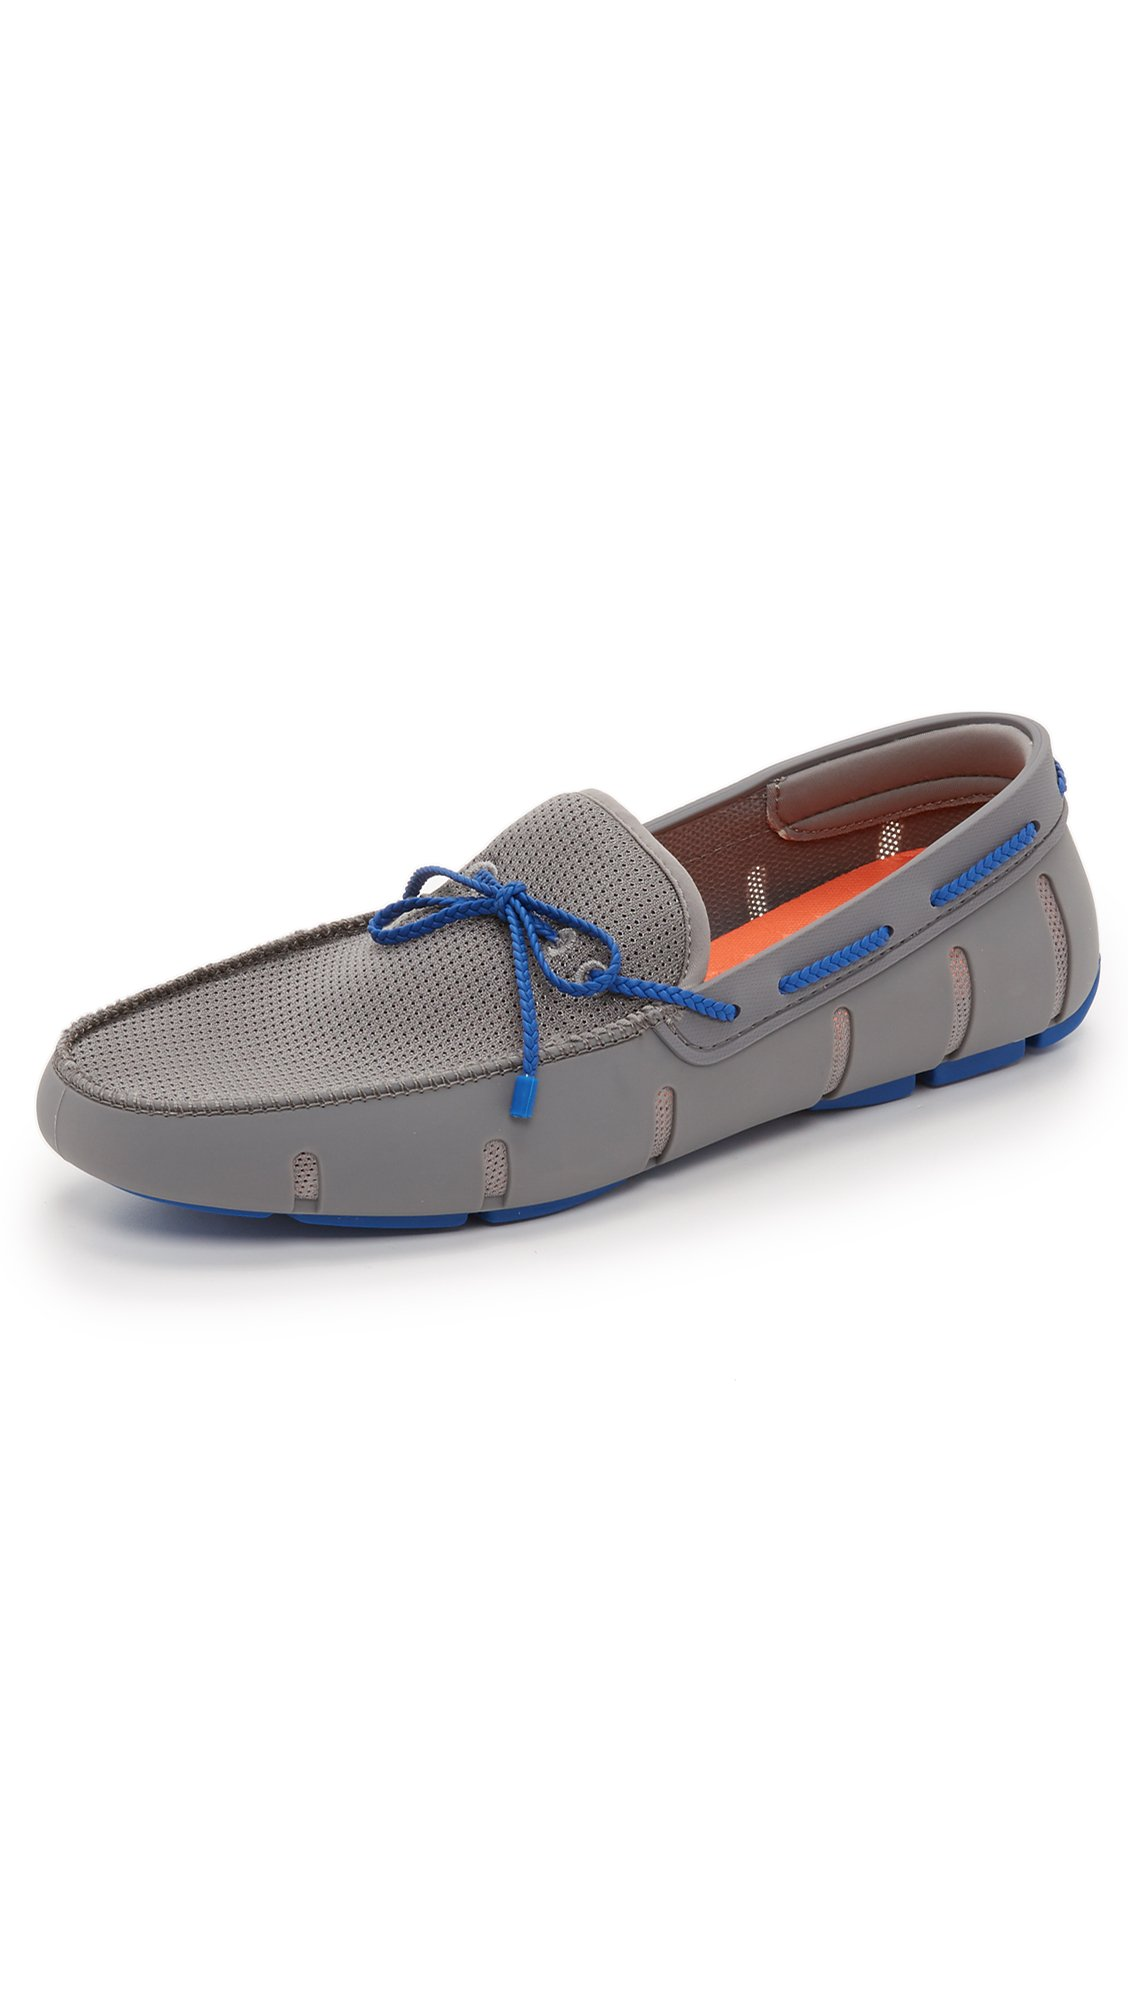 SWIMS Men's Braided Lace Loafers, Grey/Blue, 7 D(M) US